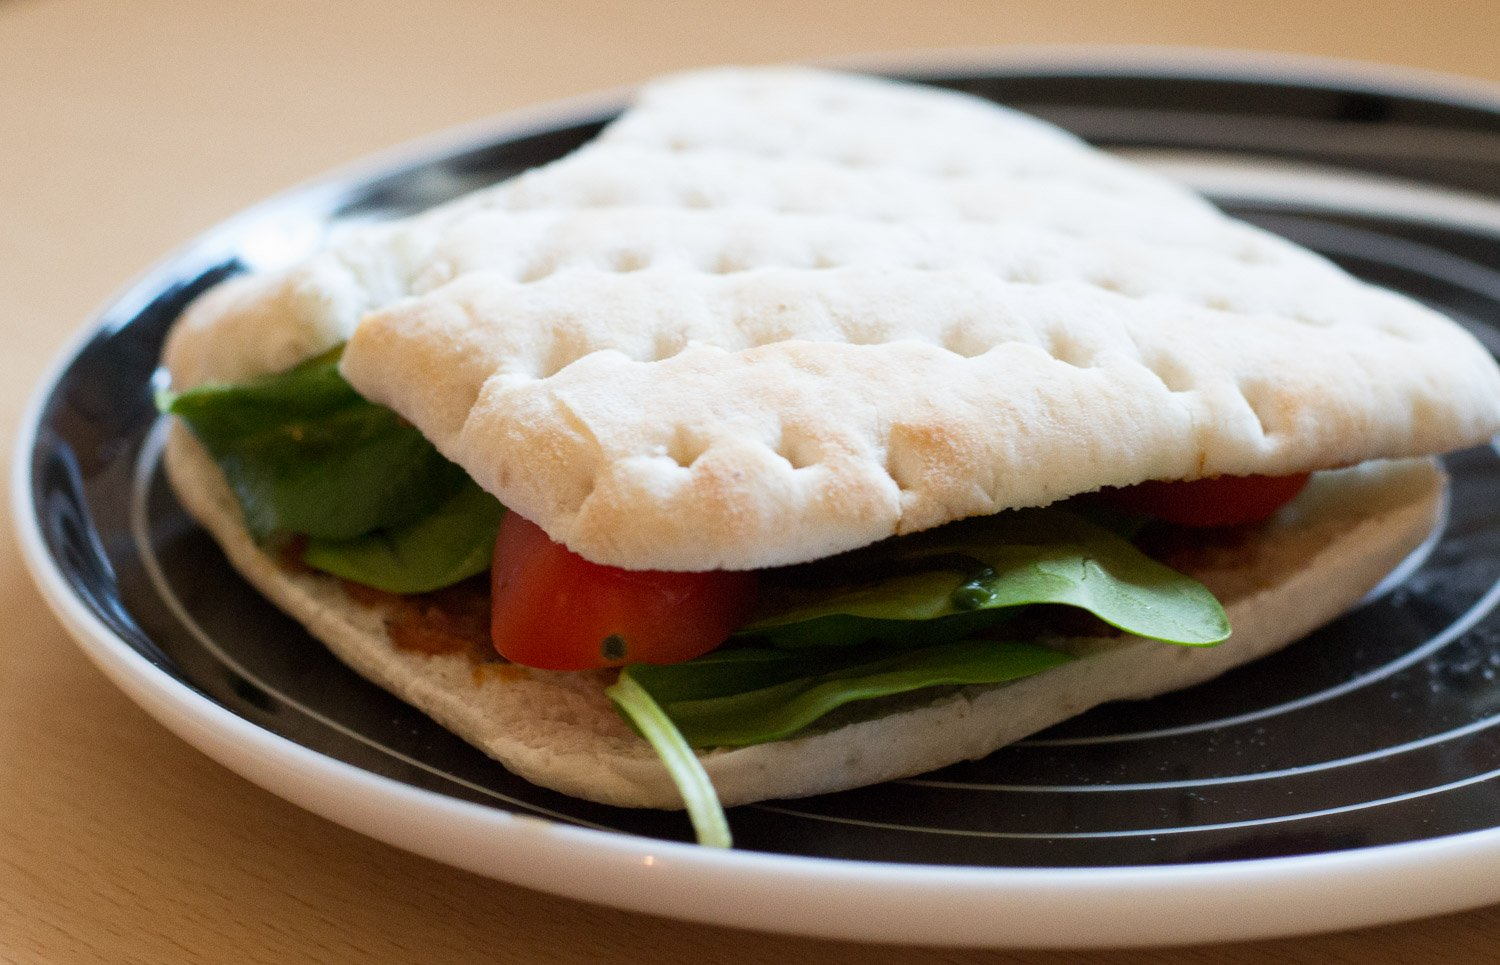 Warburtons Thin vegan sandwich